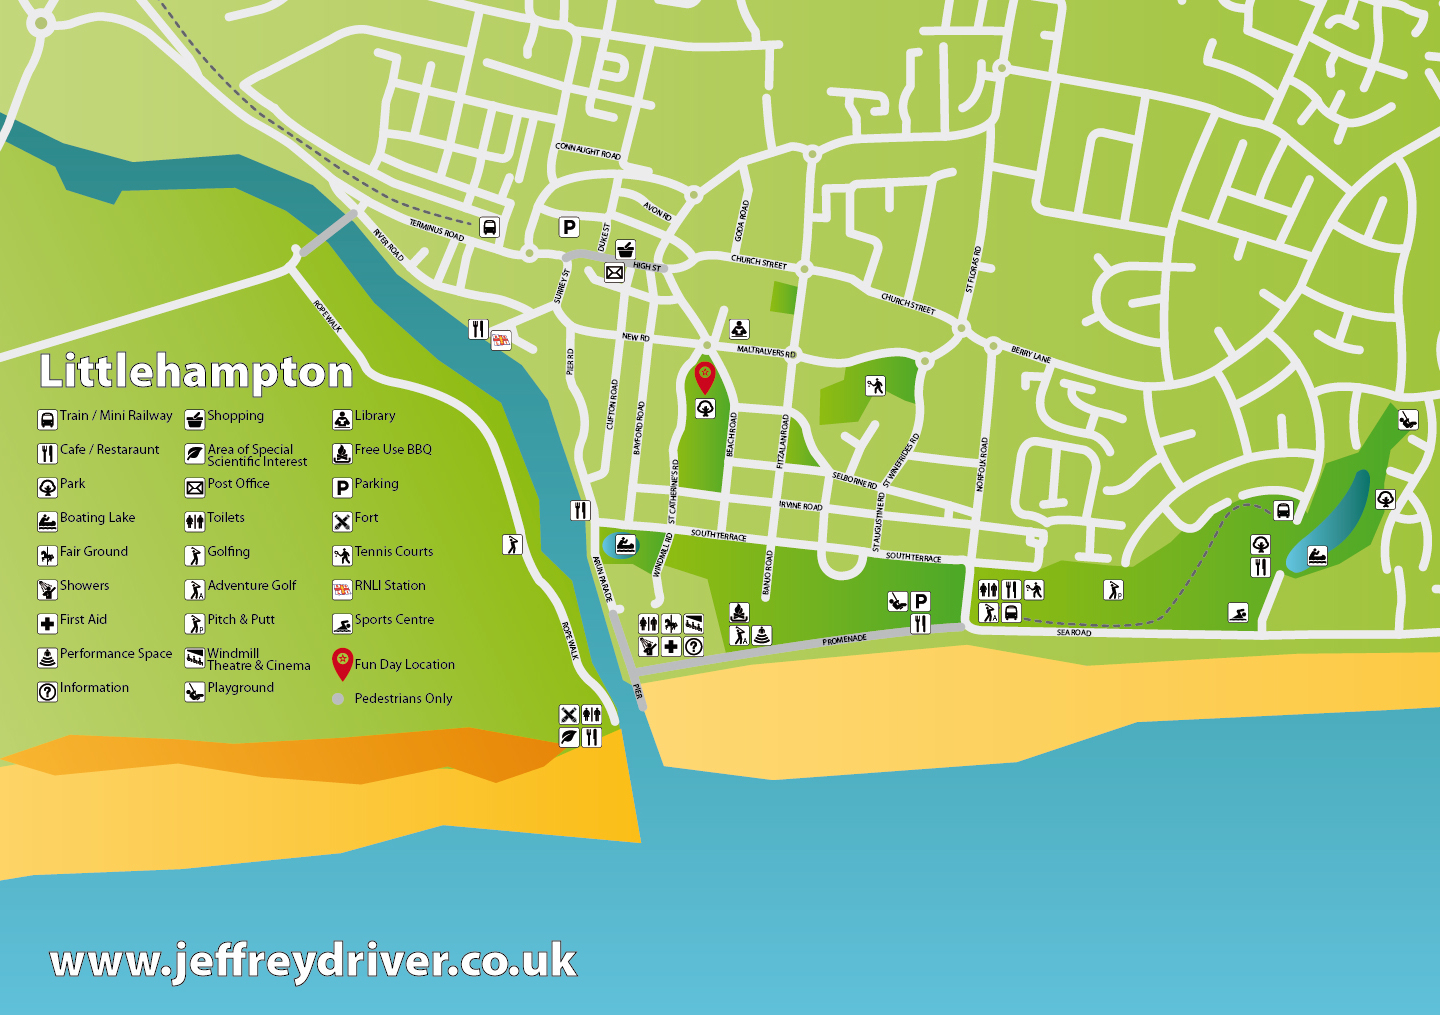 Map of Littlehampton - Graphic Design